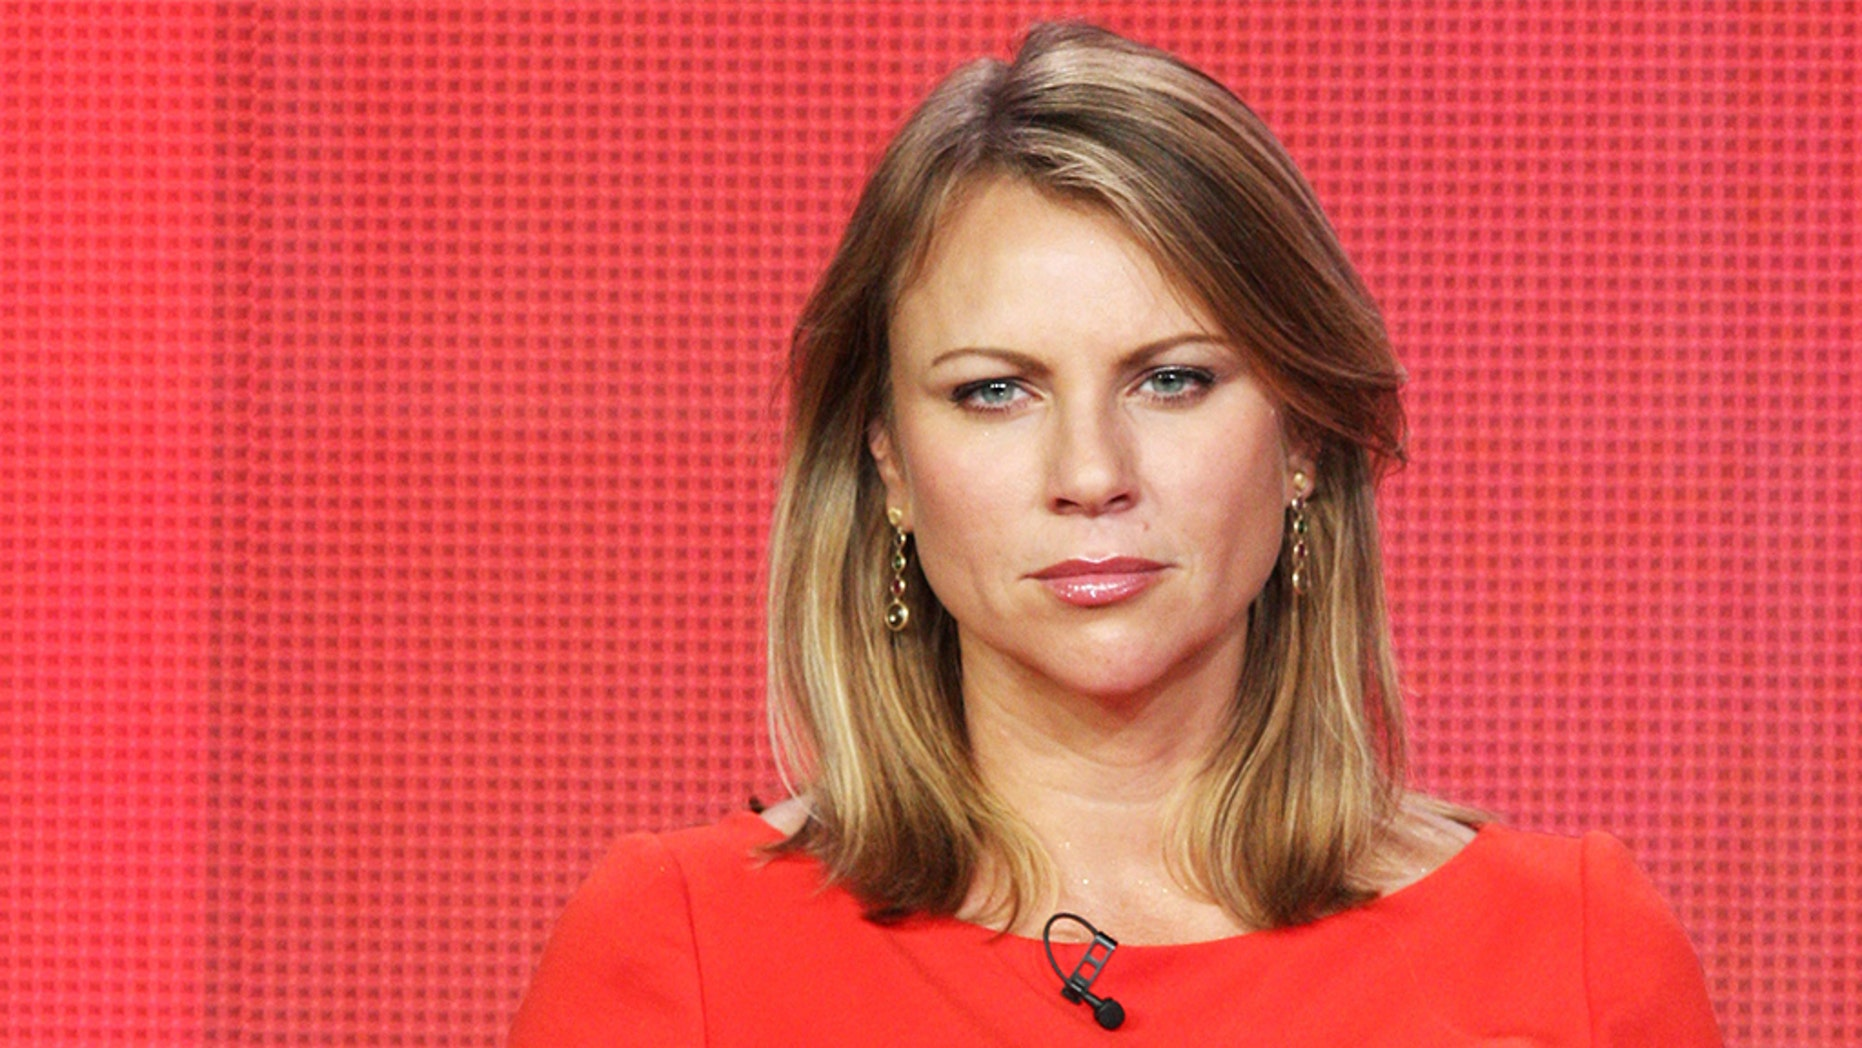 Correspondent Lara Logan of the TV show '60 Minutes Sports' attends the 2013 TCA Winter Press Tour CW/CBS panel held at The Langham Huntington Hotel and Spa on January 12, 2013 in Pasadena, California. (Photo by Tommaso Boddi/WireImage)